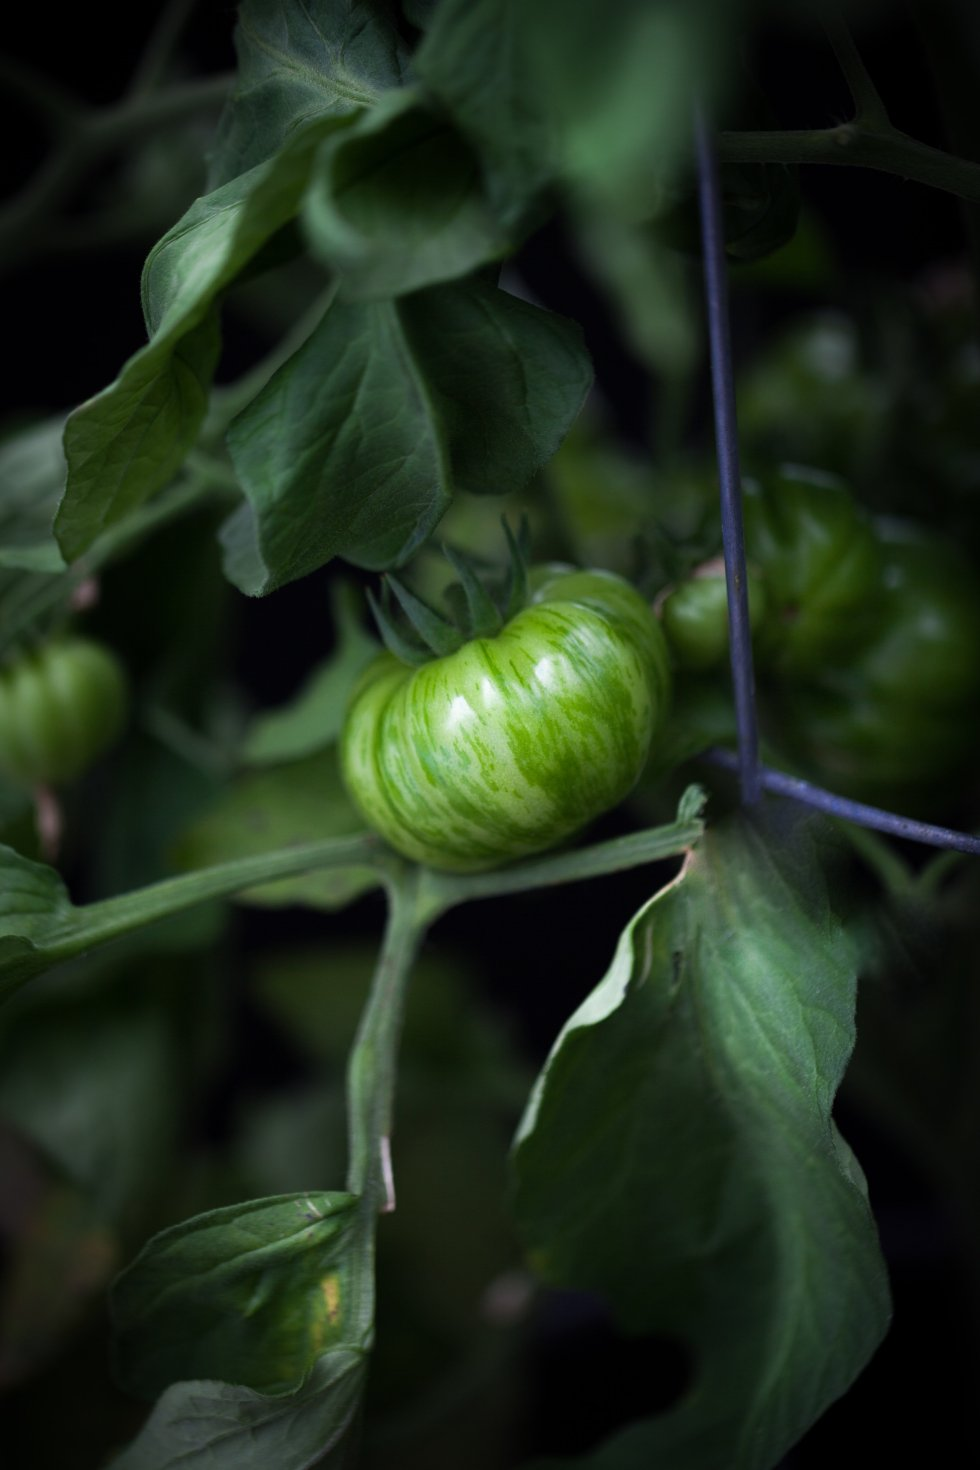 the simple green - heirloom tomato